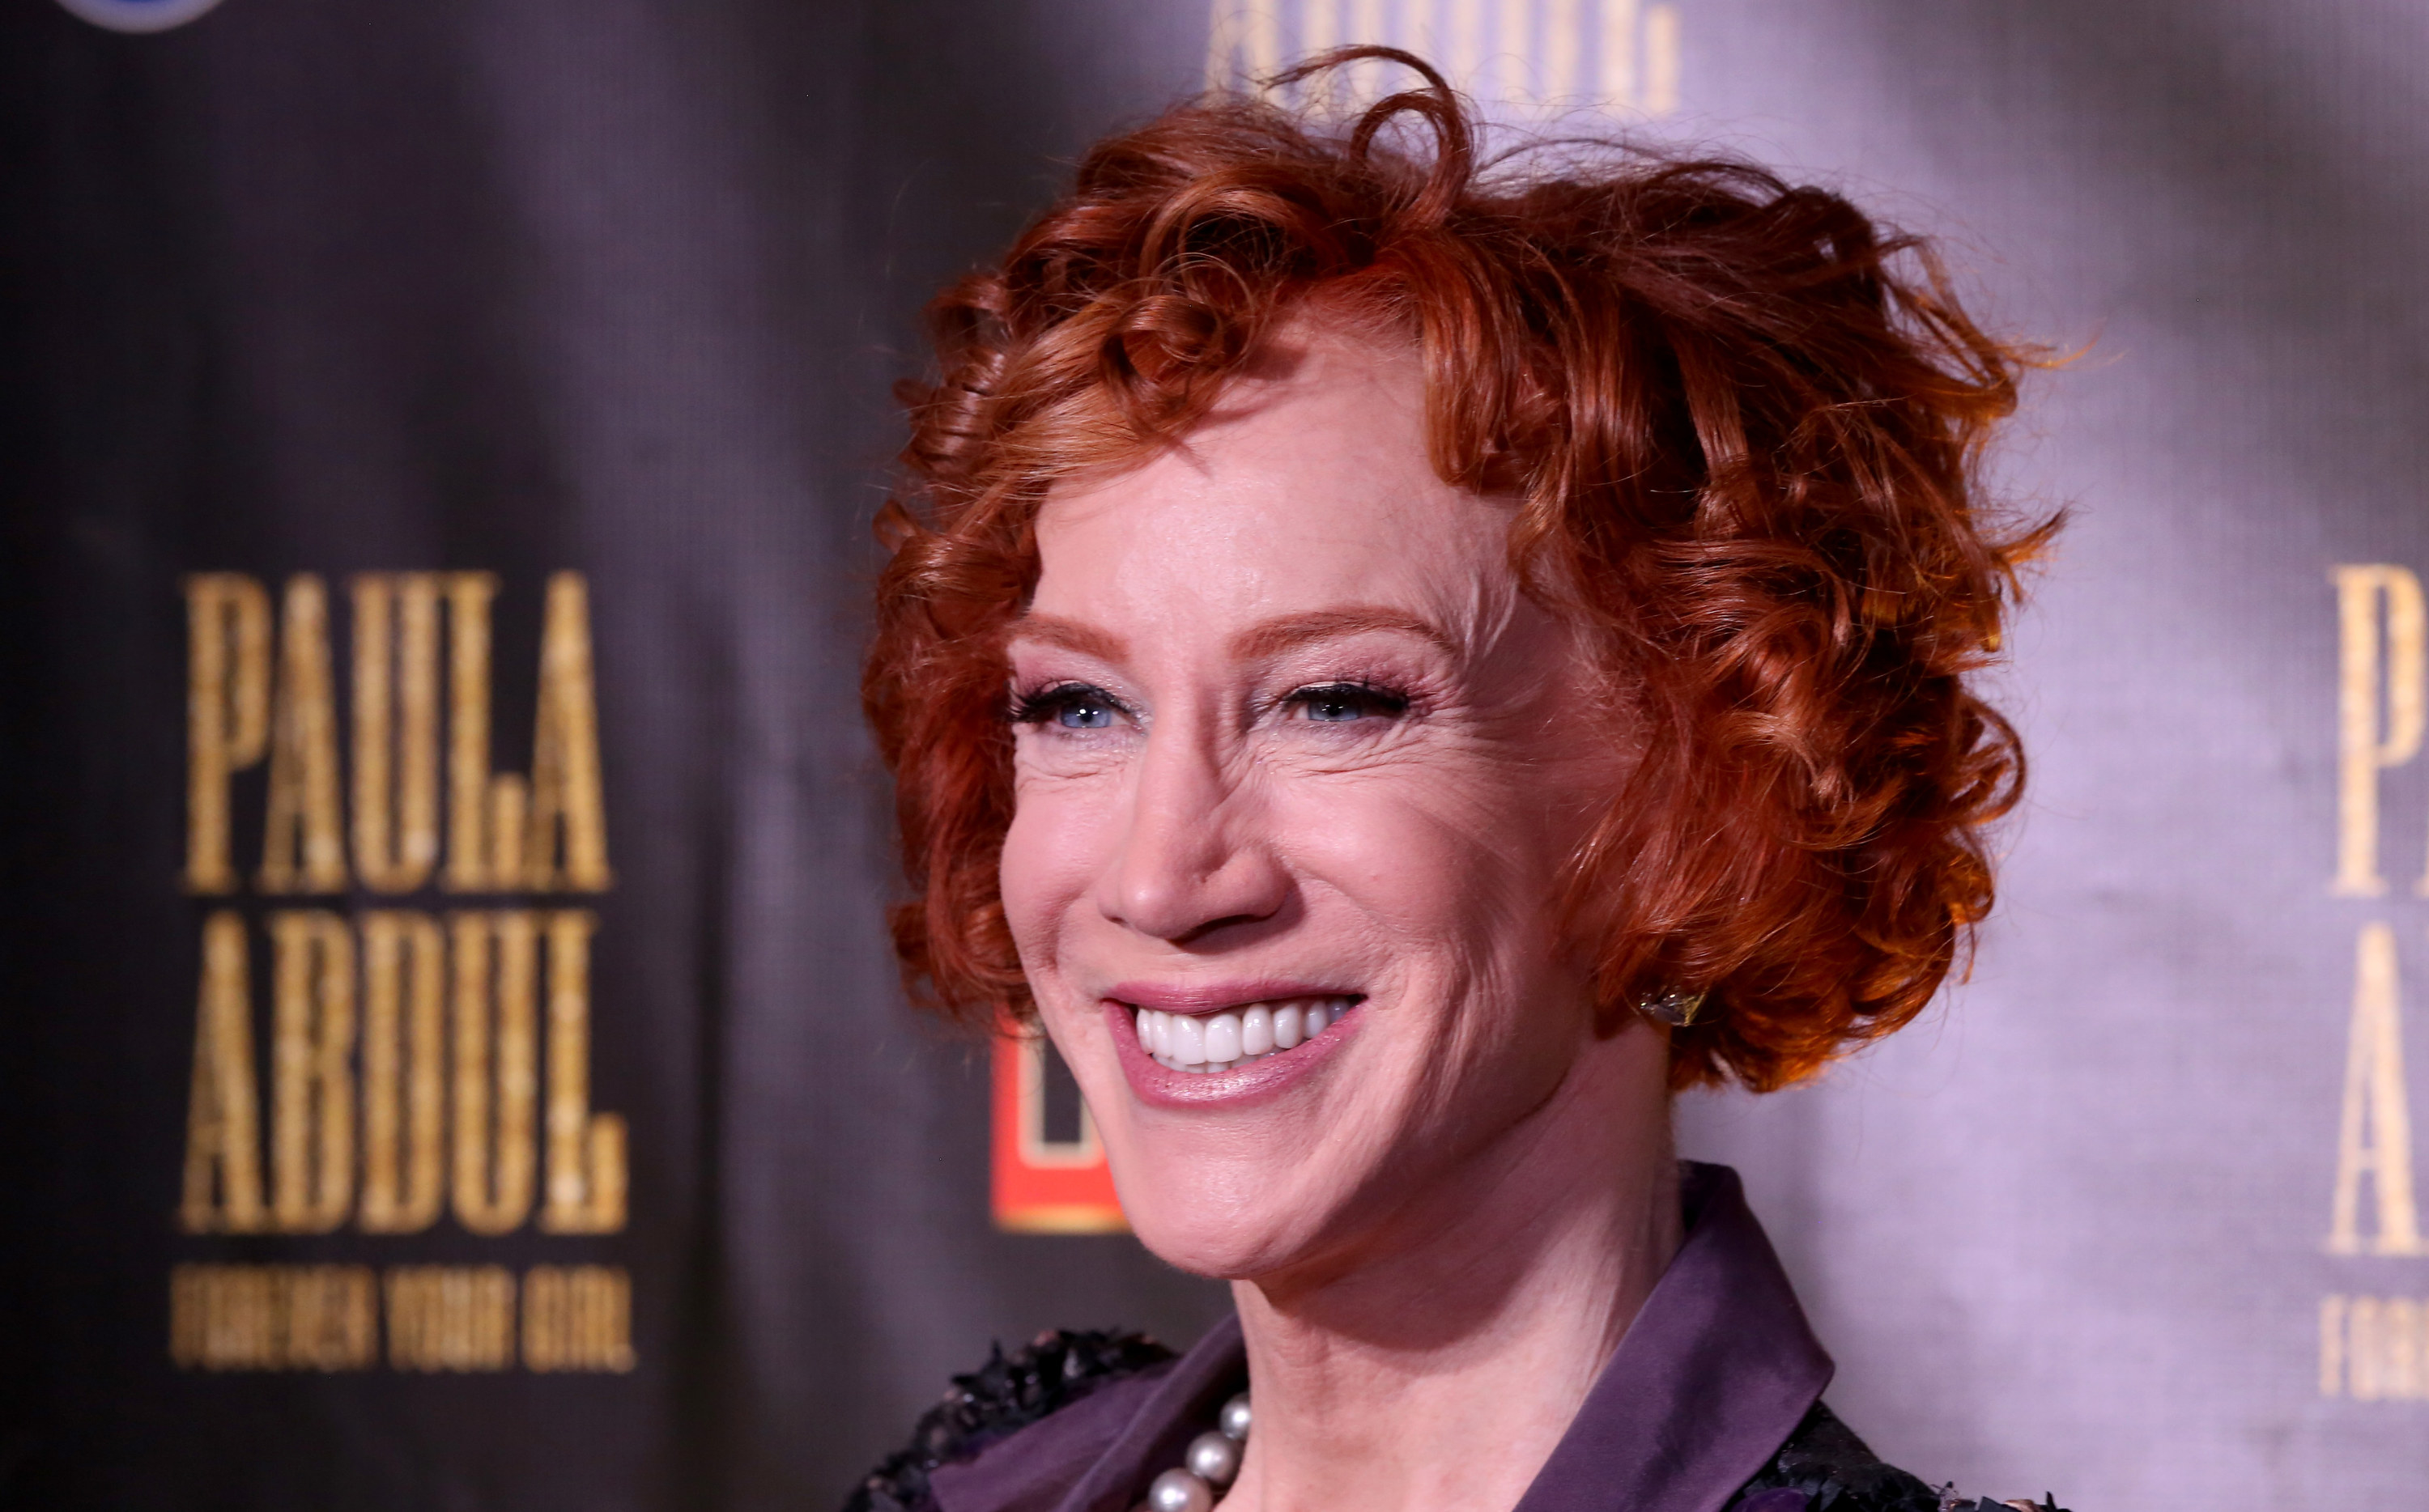 Closeup photo of Kathy Griffin smiling at something off-camera